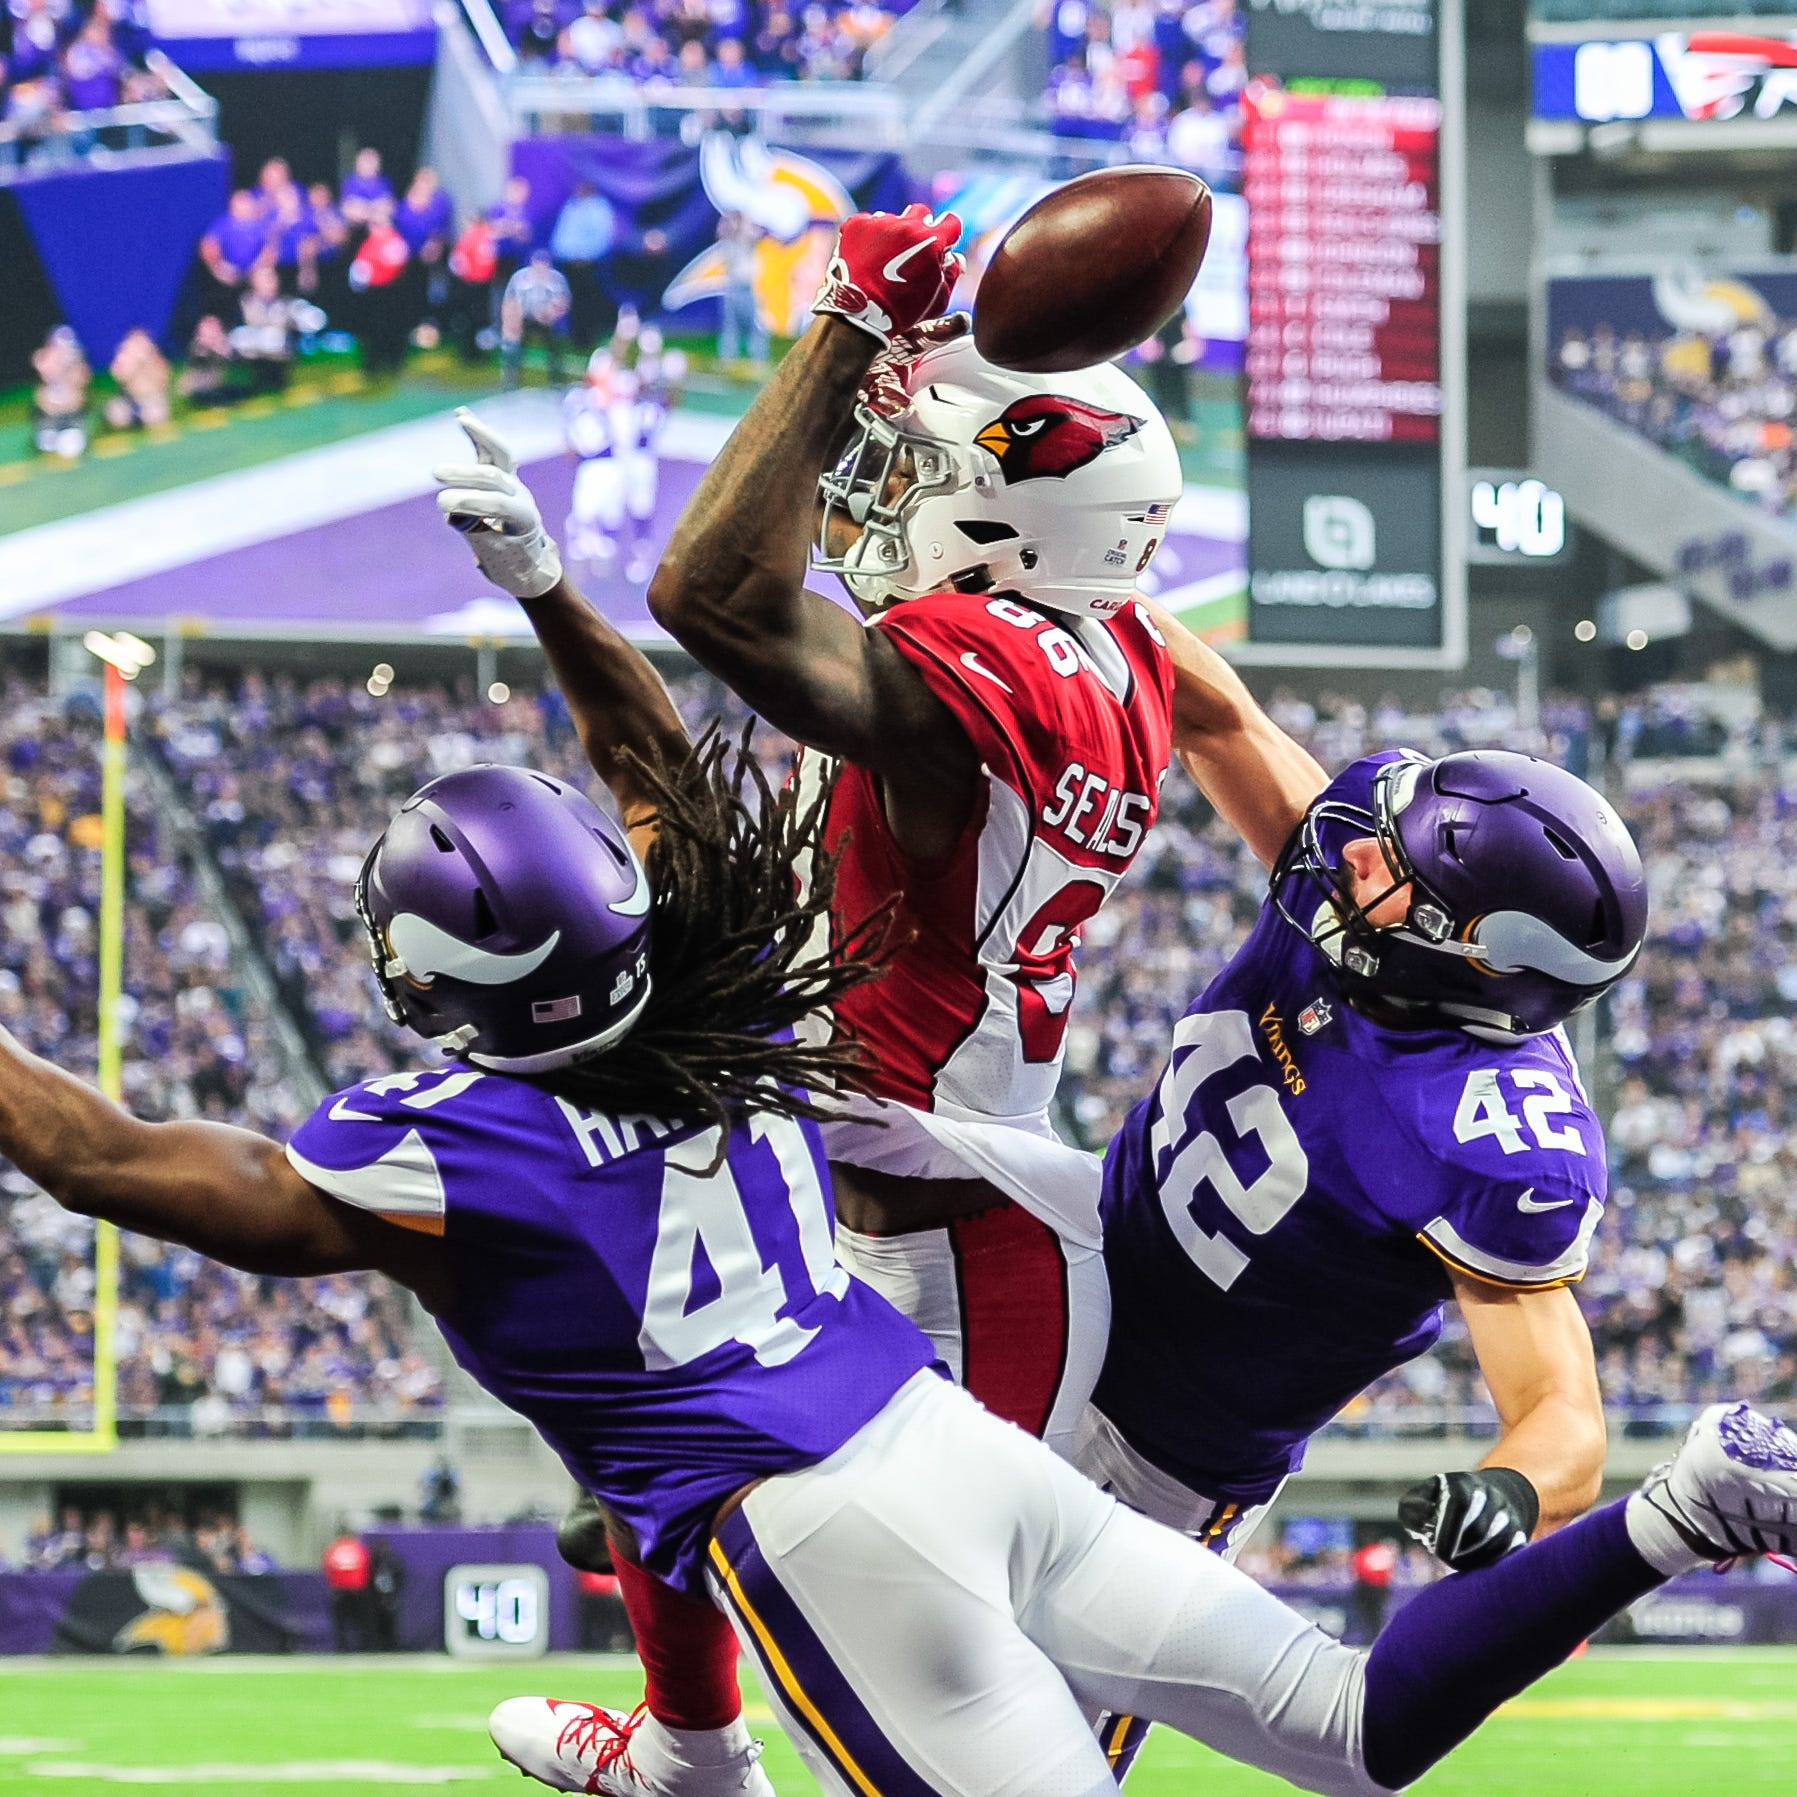 Instant replay: Cardinals worn down in loss to Vikings